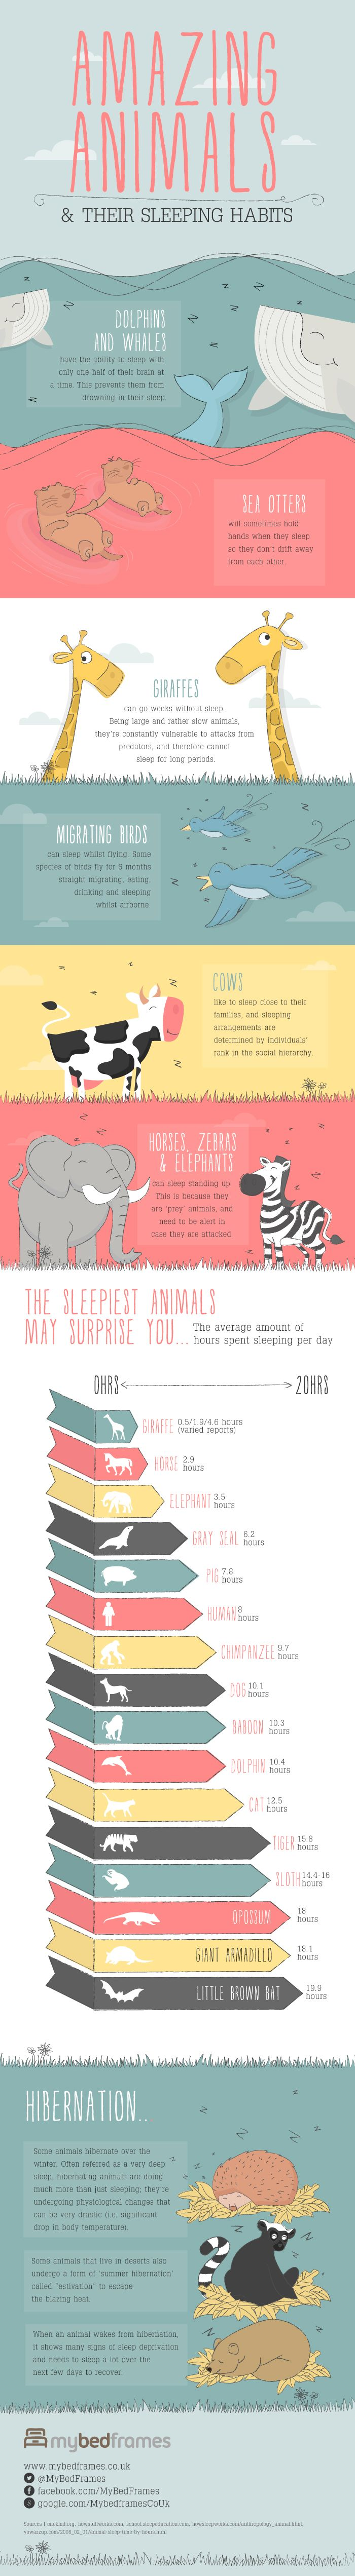 Cute Infographic Reveals The Surprising Facts About How #Animals #Sleep At Night - love this! As if cats only sleep for 12.5 hours!